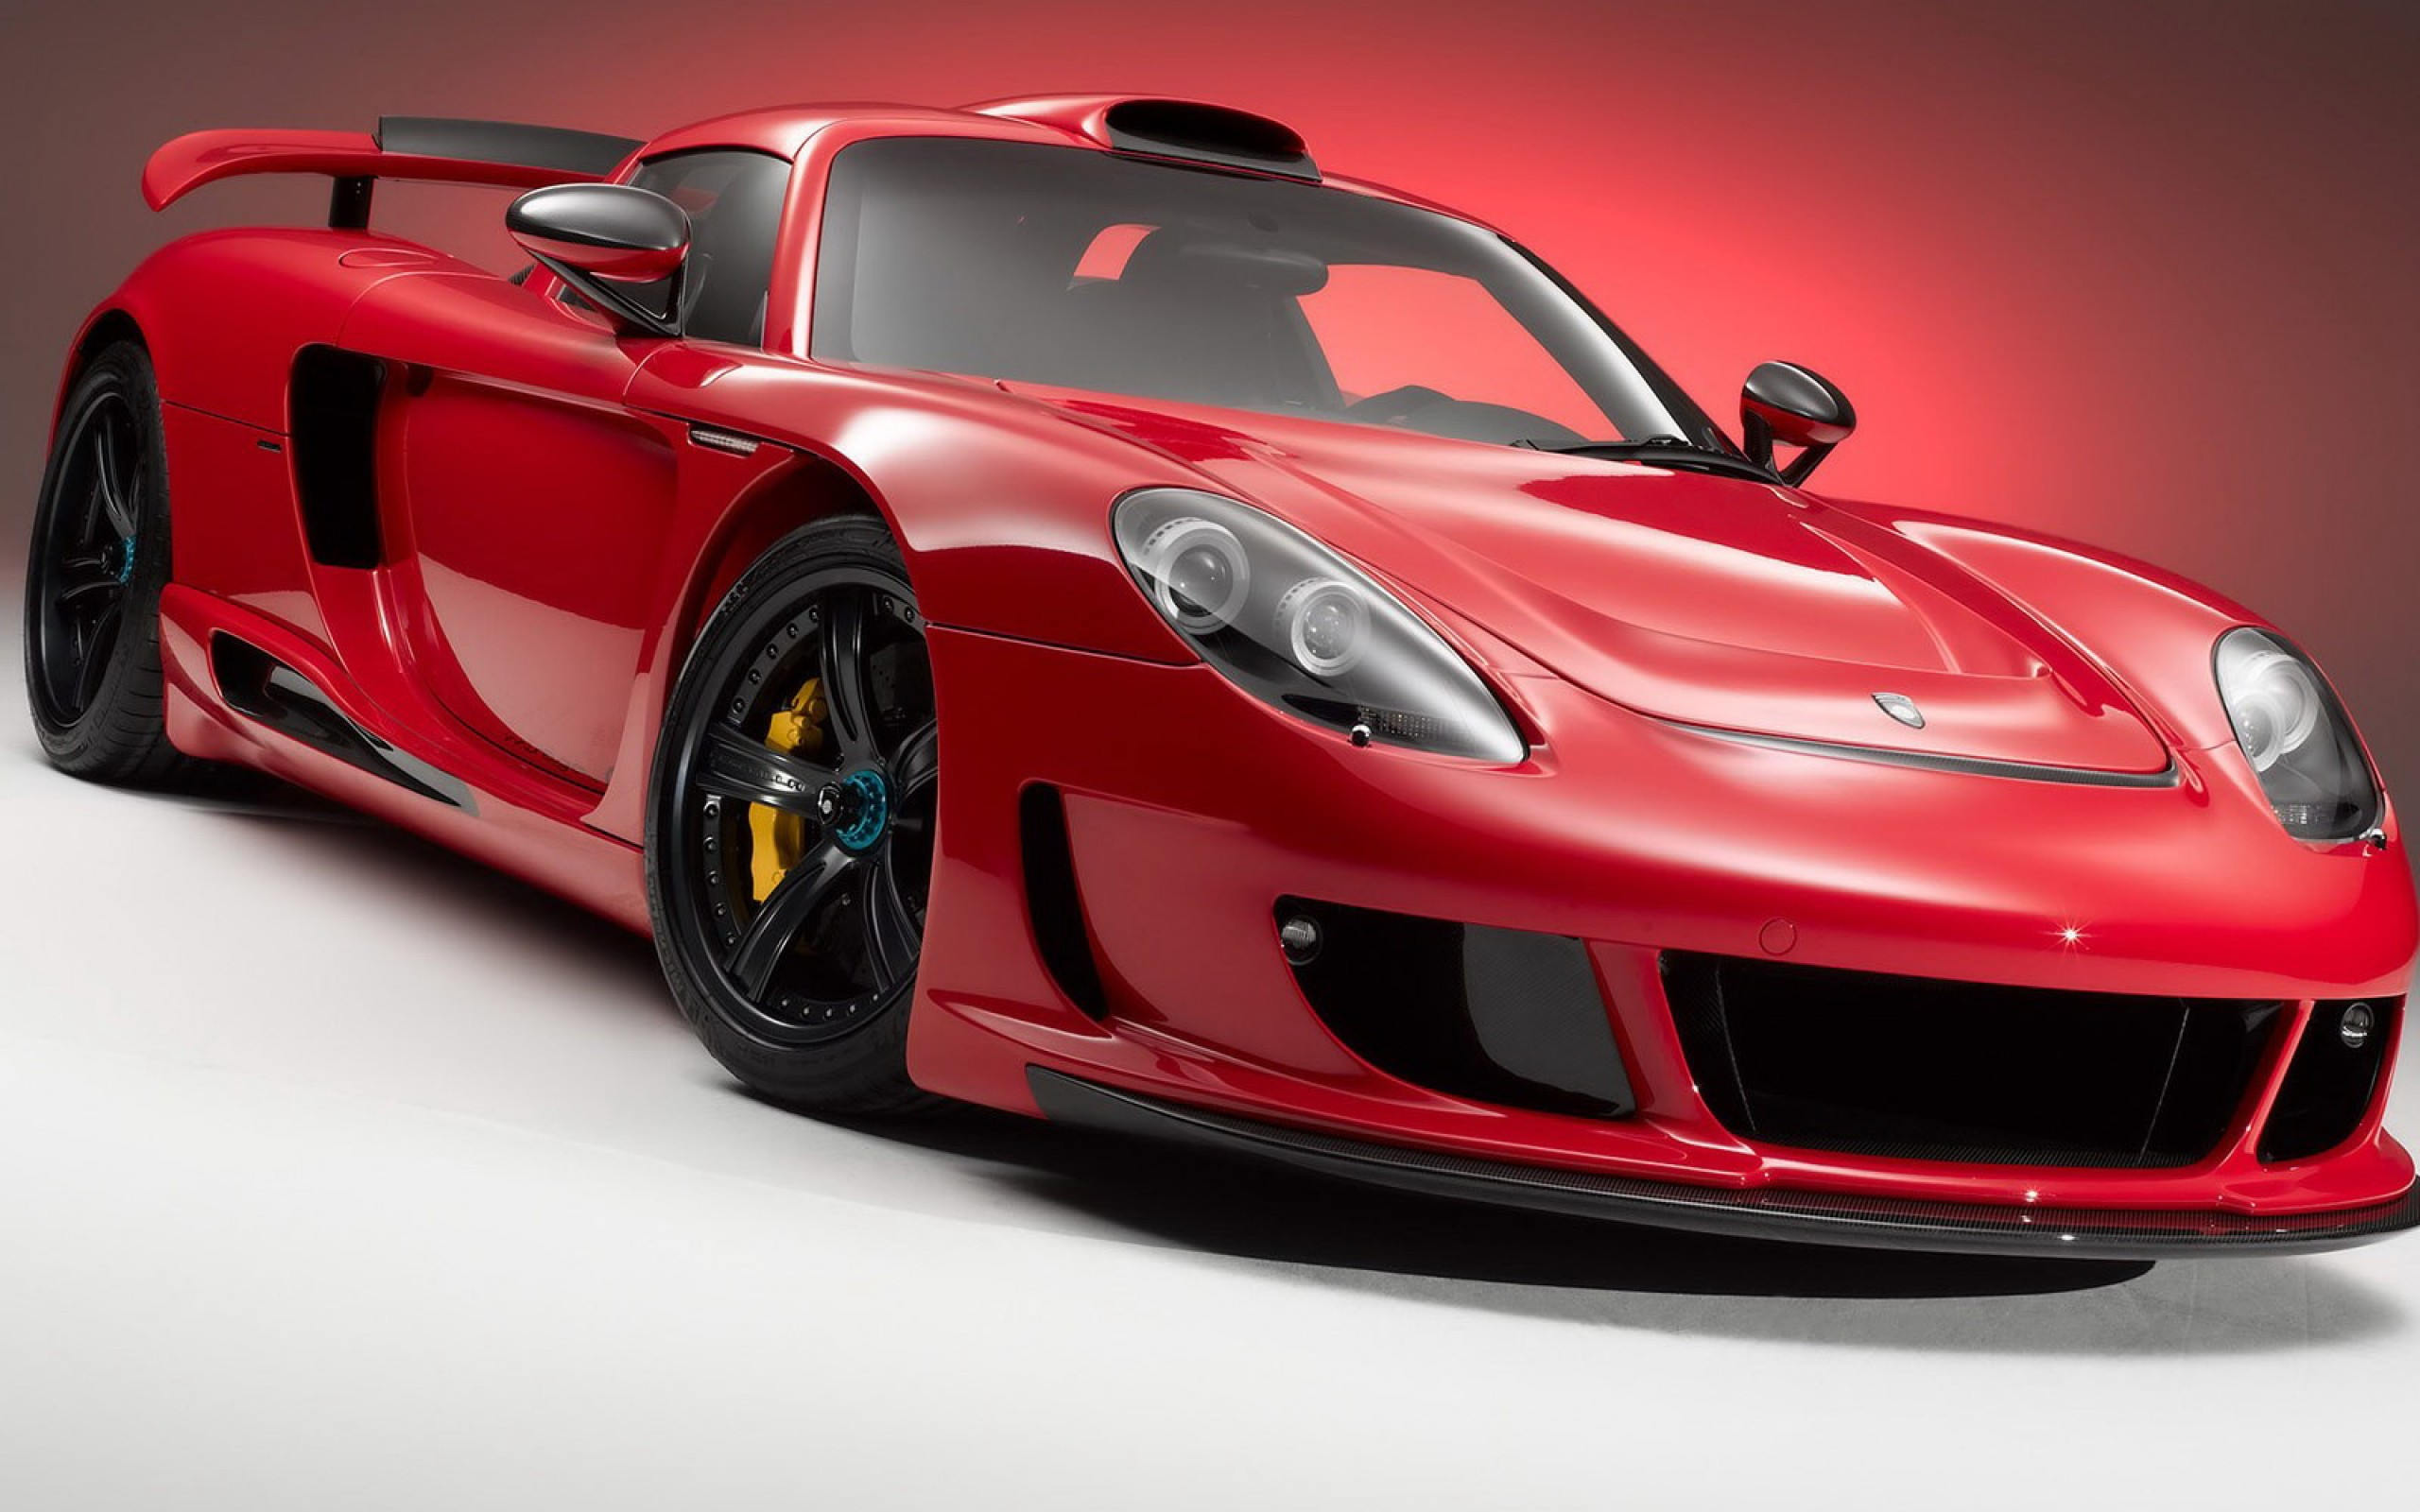 red-cars-wallpaper-desktop-hd-widescreen-11